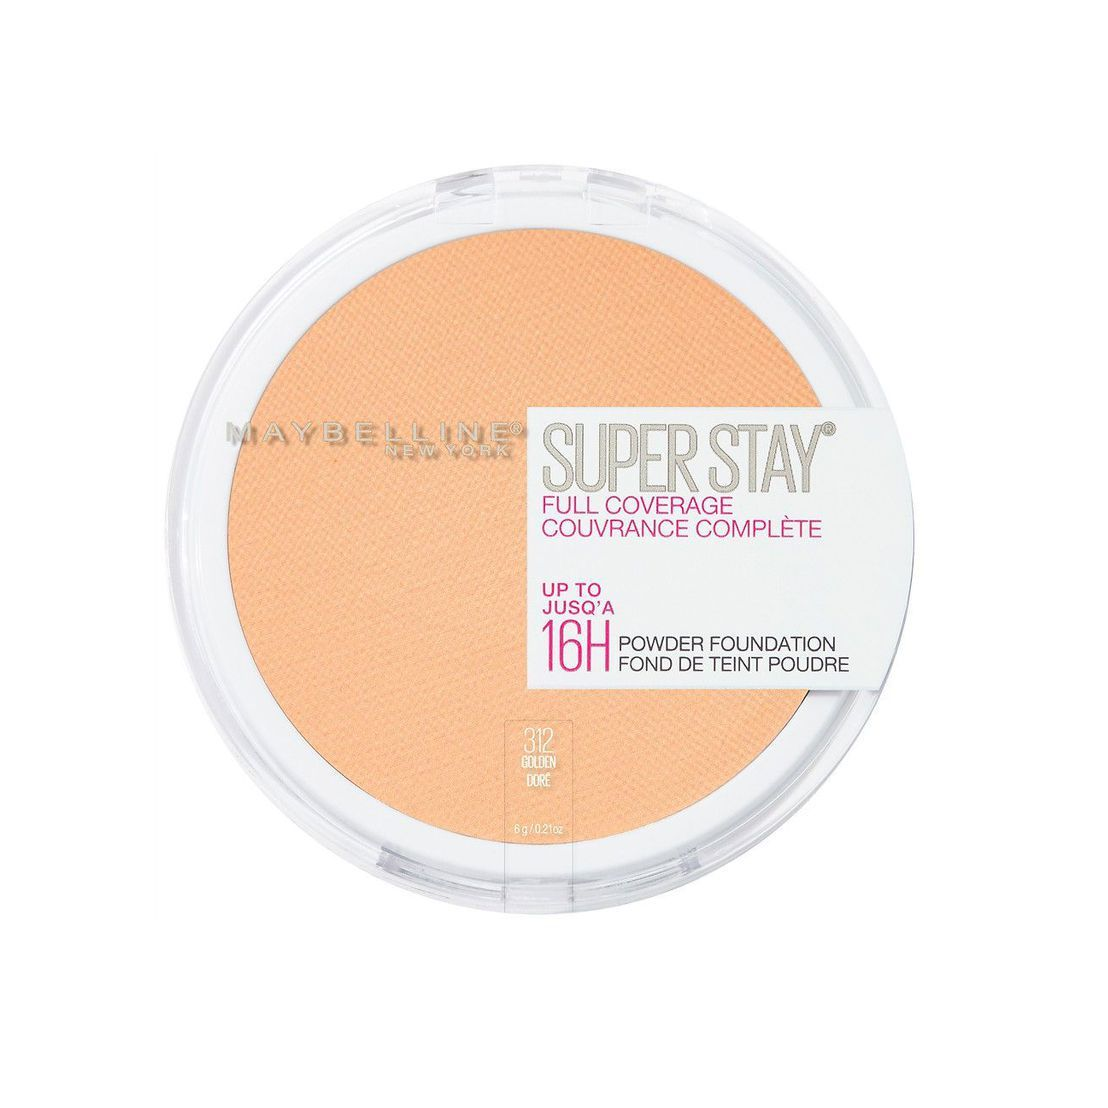 The Hands-Down Best SuperStay Full Coverage Powder Foundation Maybelline ulta.com $11.99 SHOP NOW I kid you not, I have a lifetime supply of this powder foundation because it is that good. It's full coverage, but doesn't feel like anything is on your skin.